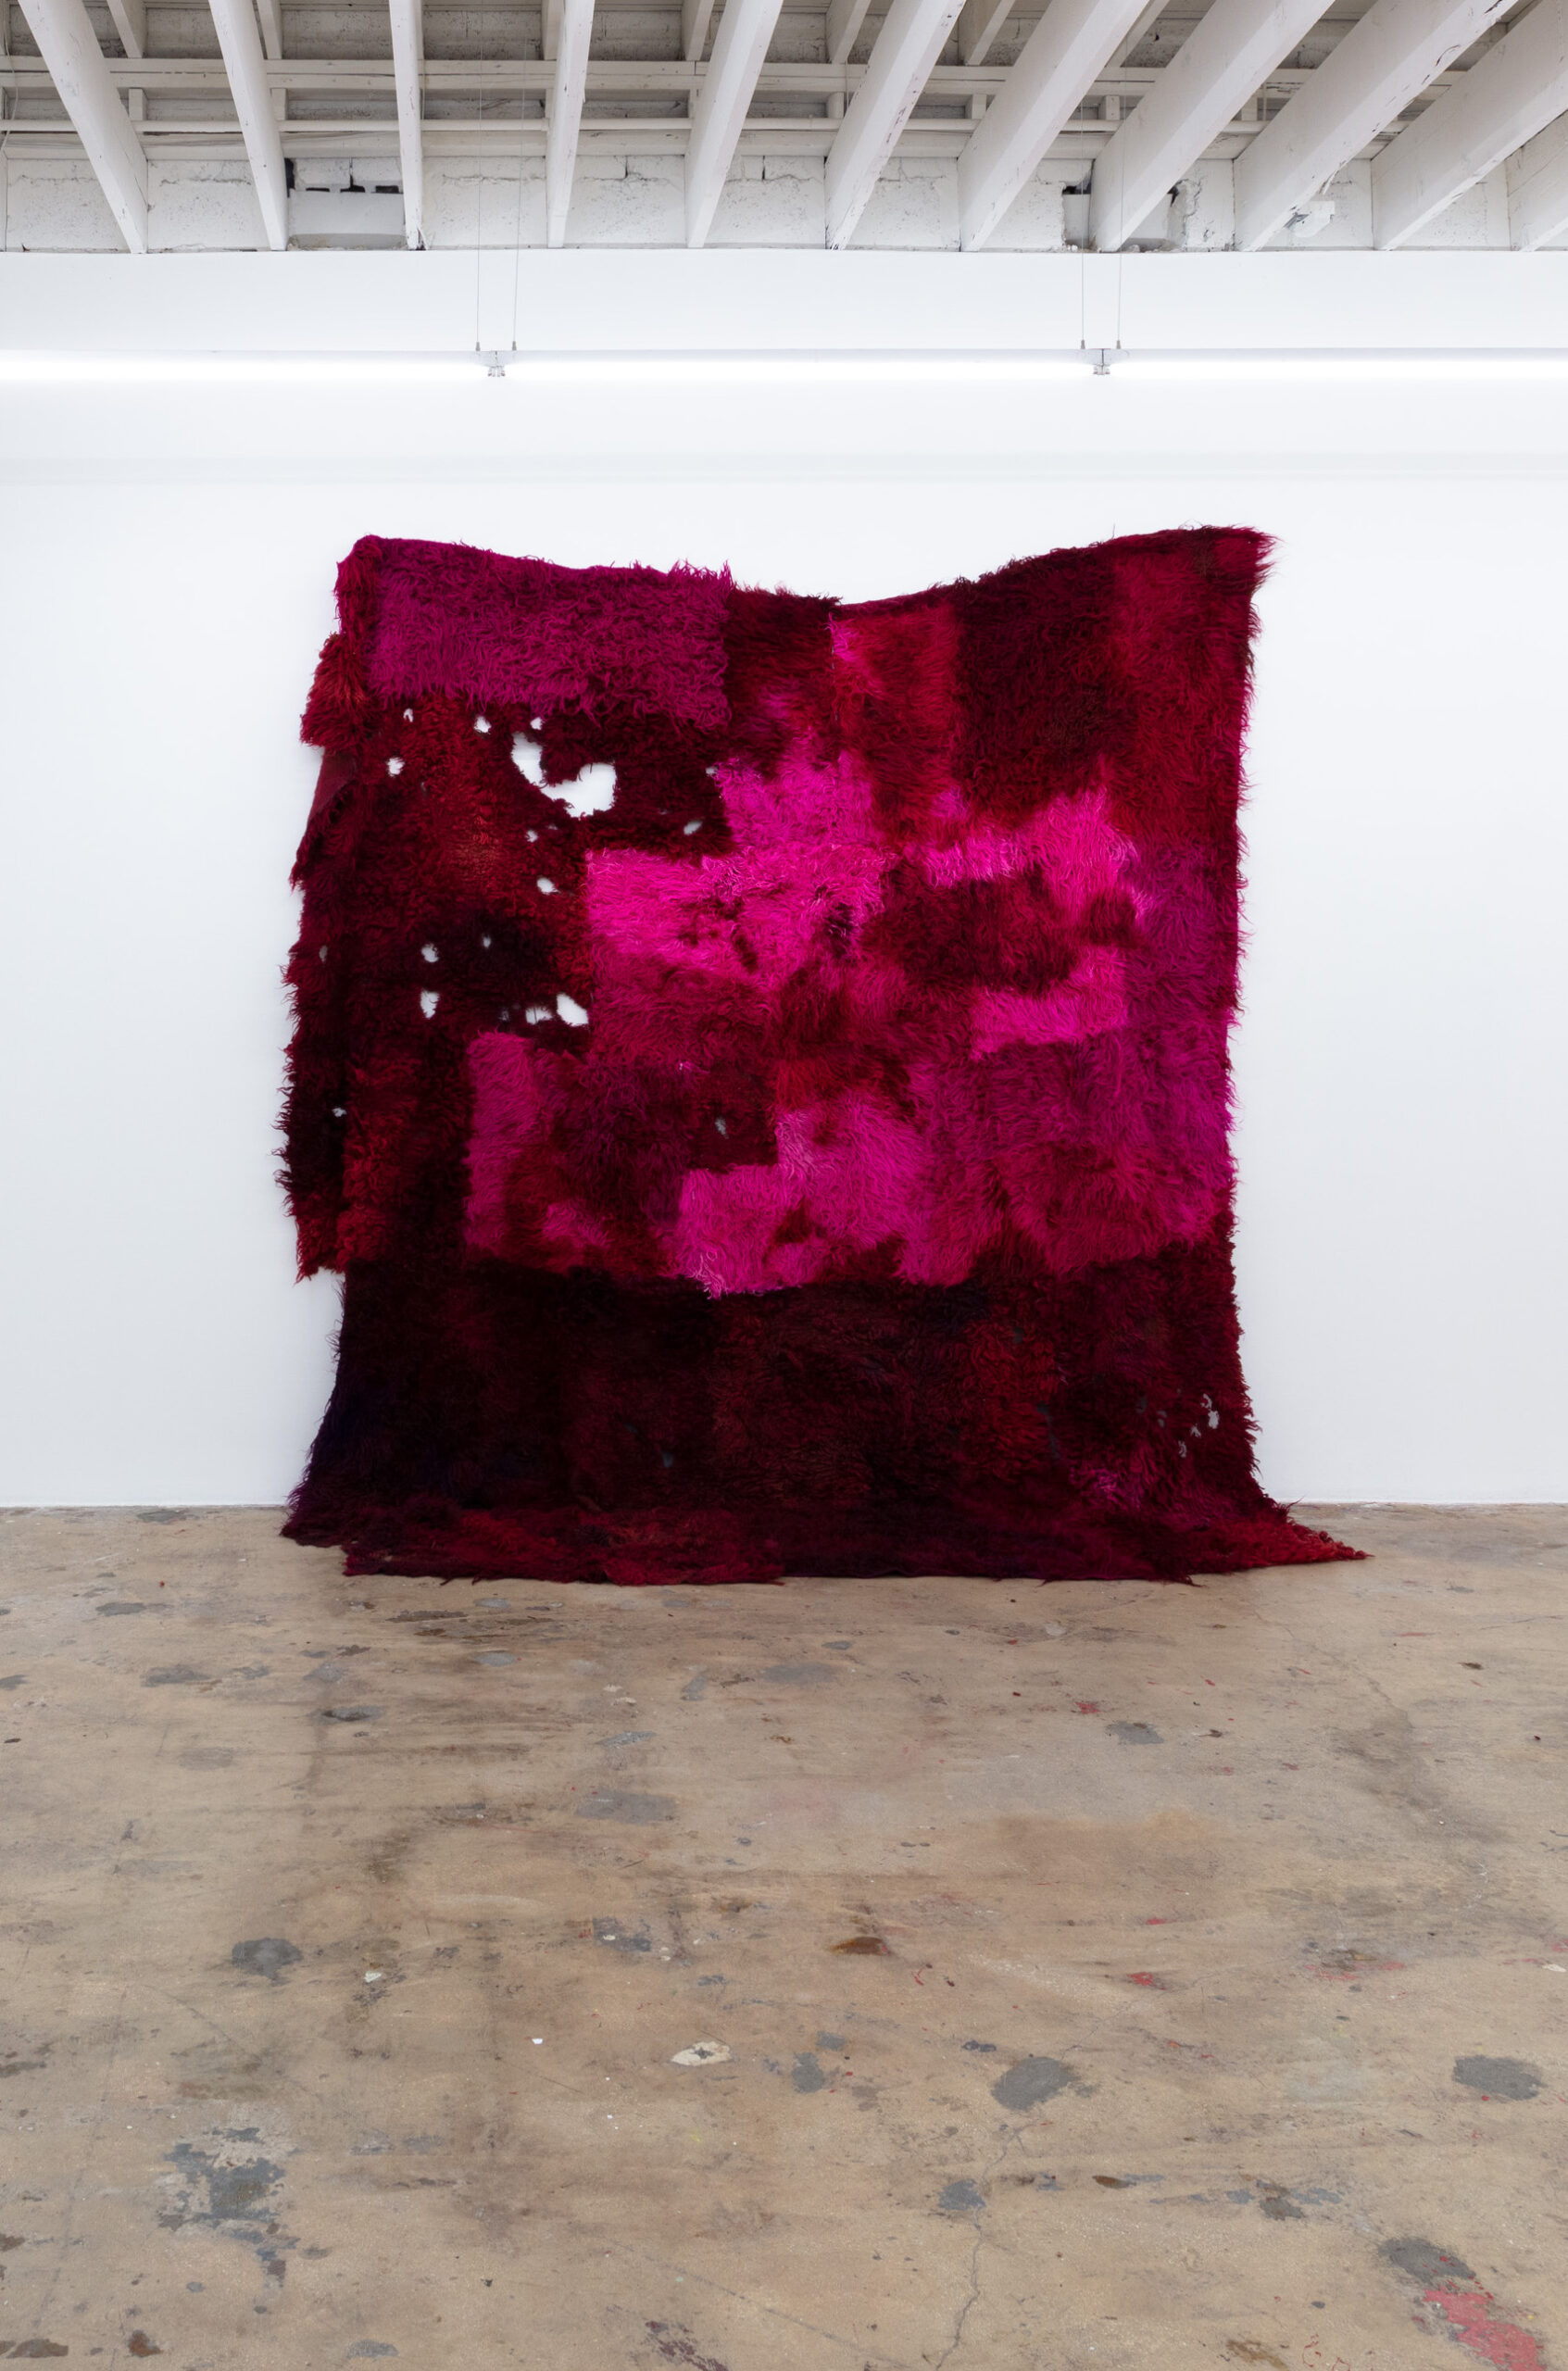 Anna Betbeze, Untitled (Ripe), 2021, wool acid dyes, ash from burning, 139 x 120 in.